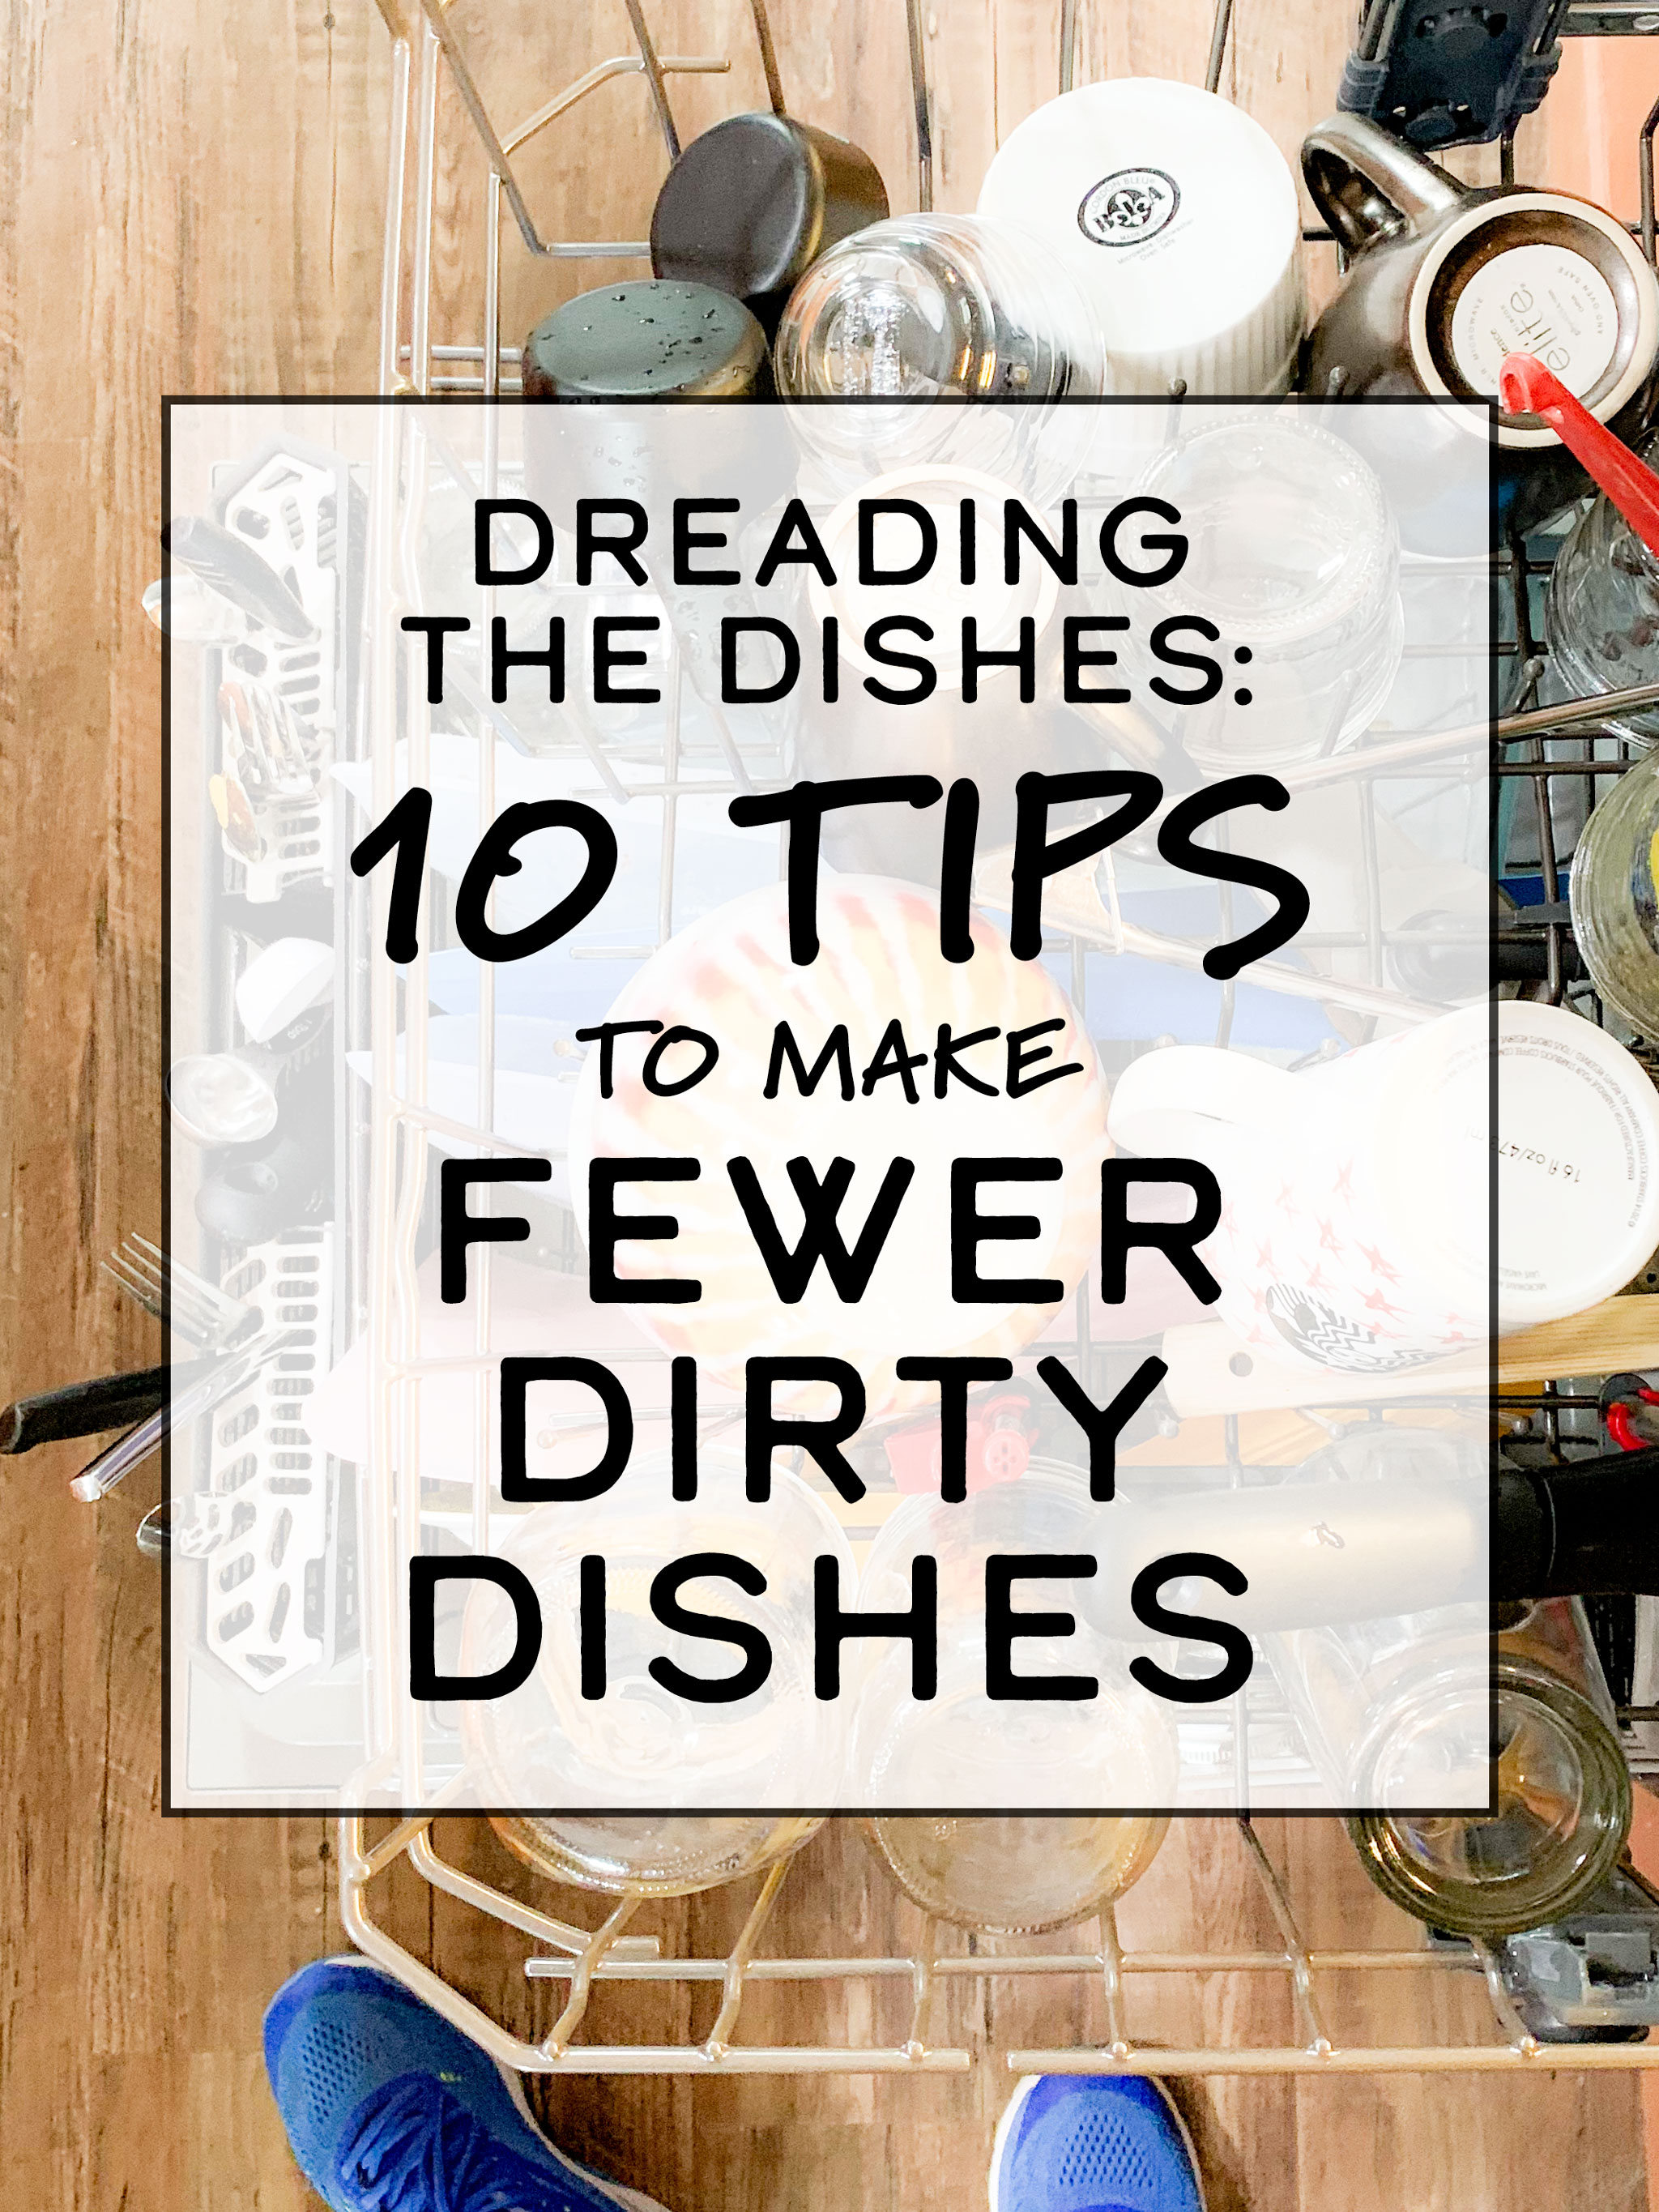 Cover photo for Dreading the Dishes: 10 Tips to Make Fewer Dirty Dishes in the Kitchen